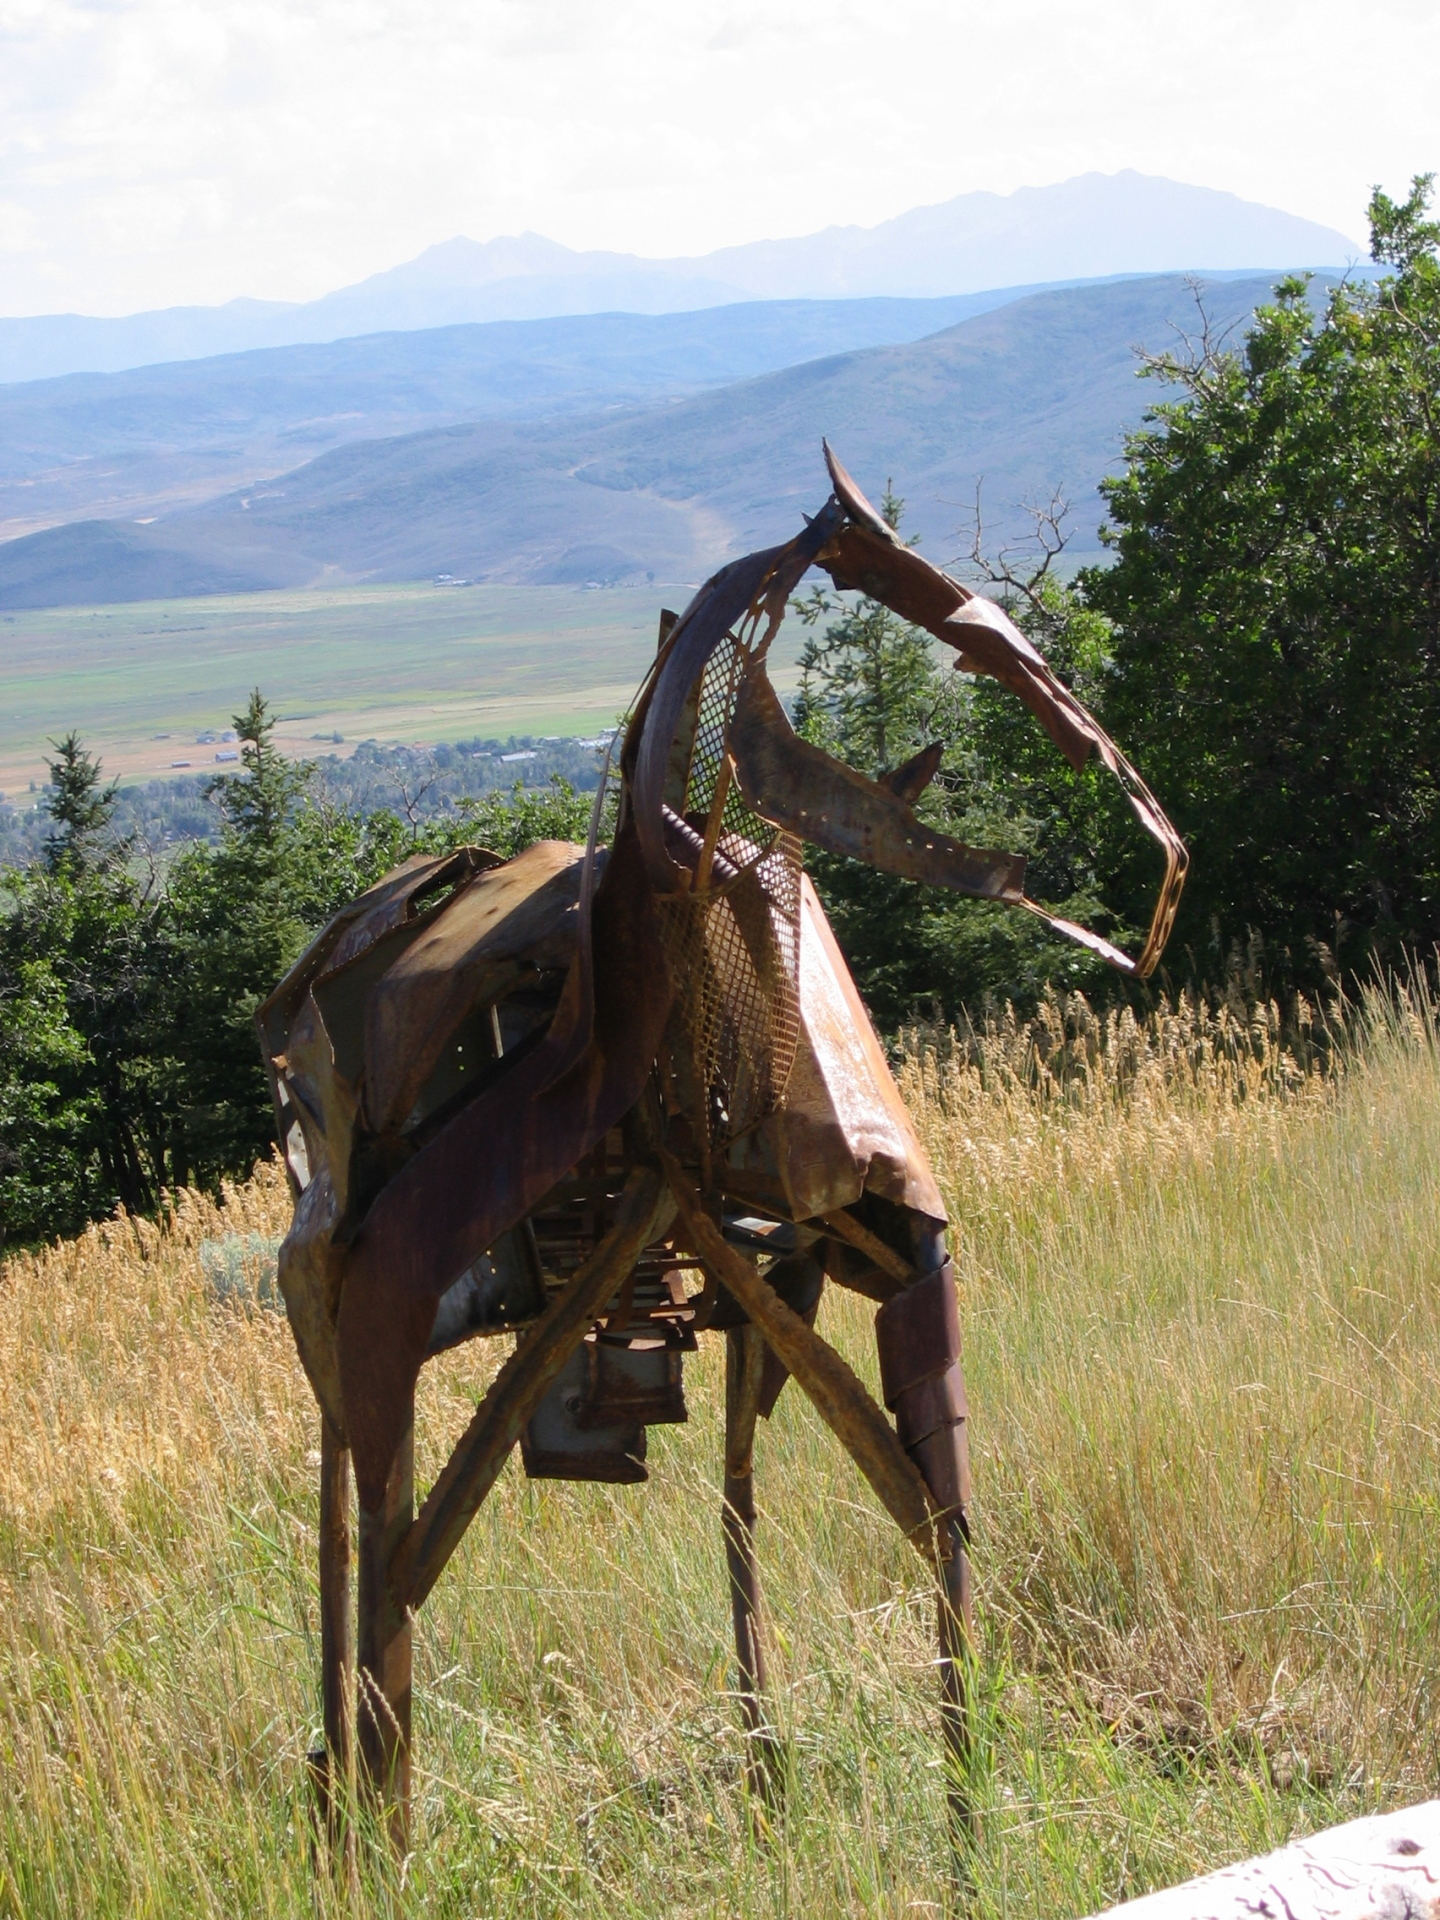 Life size steel horse sculpture, Utah, Rusty Croft, Carmel California